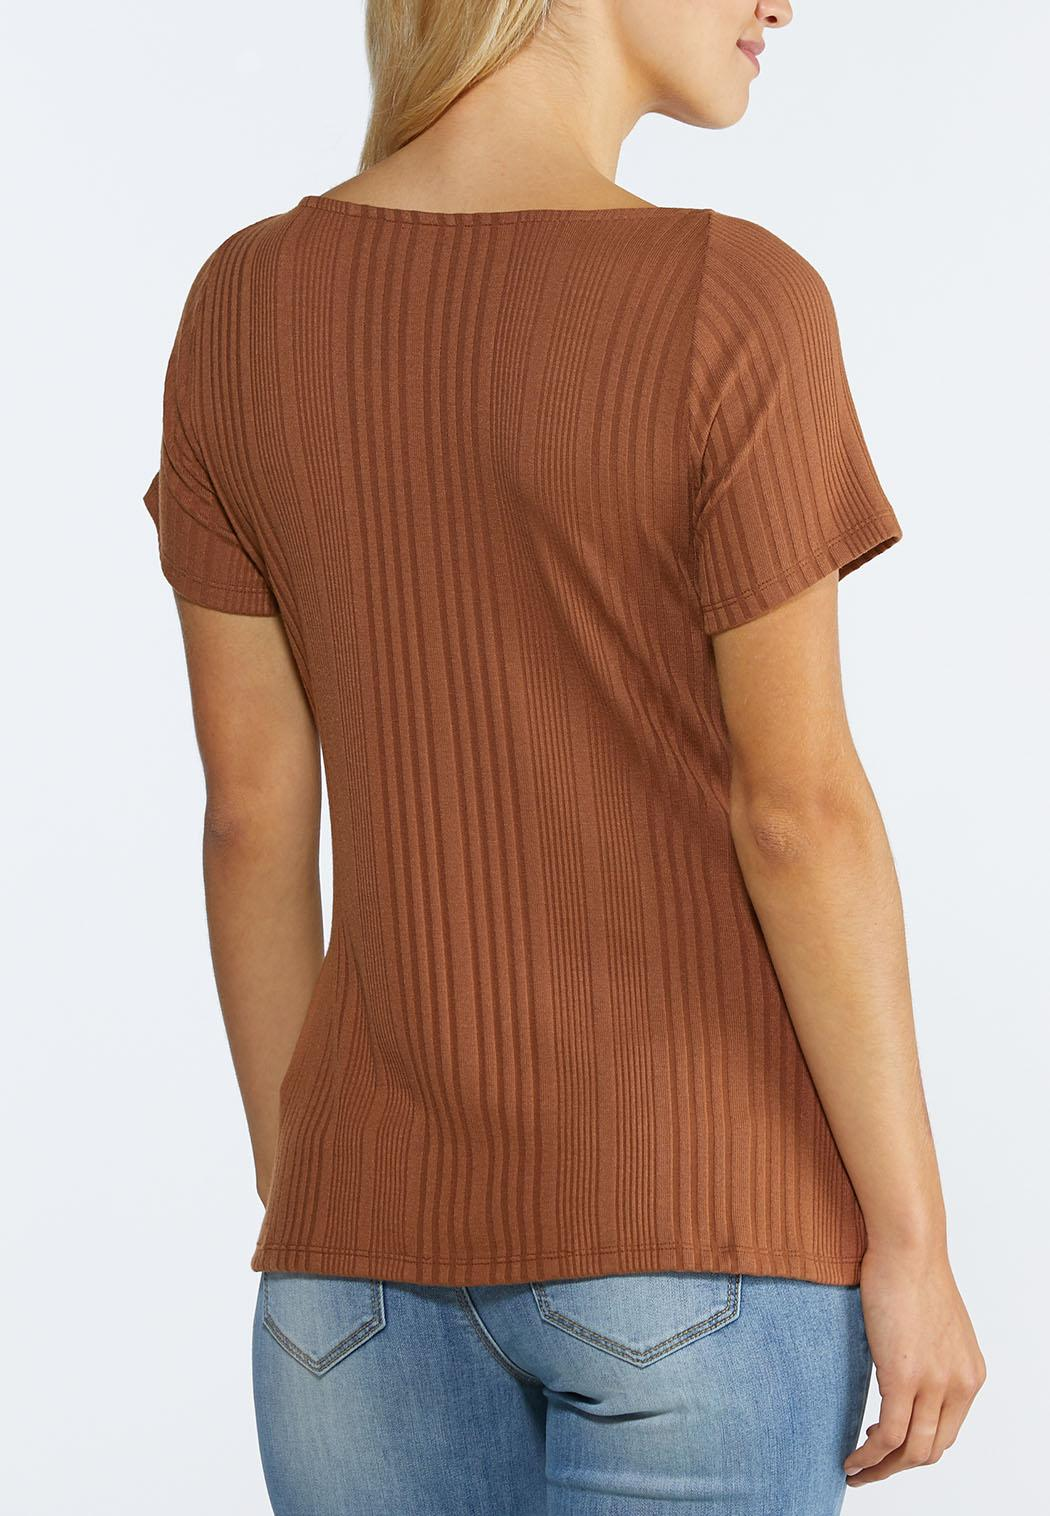 Ribbed Scoop Neck Top (Item #44308905)